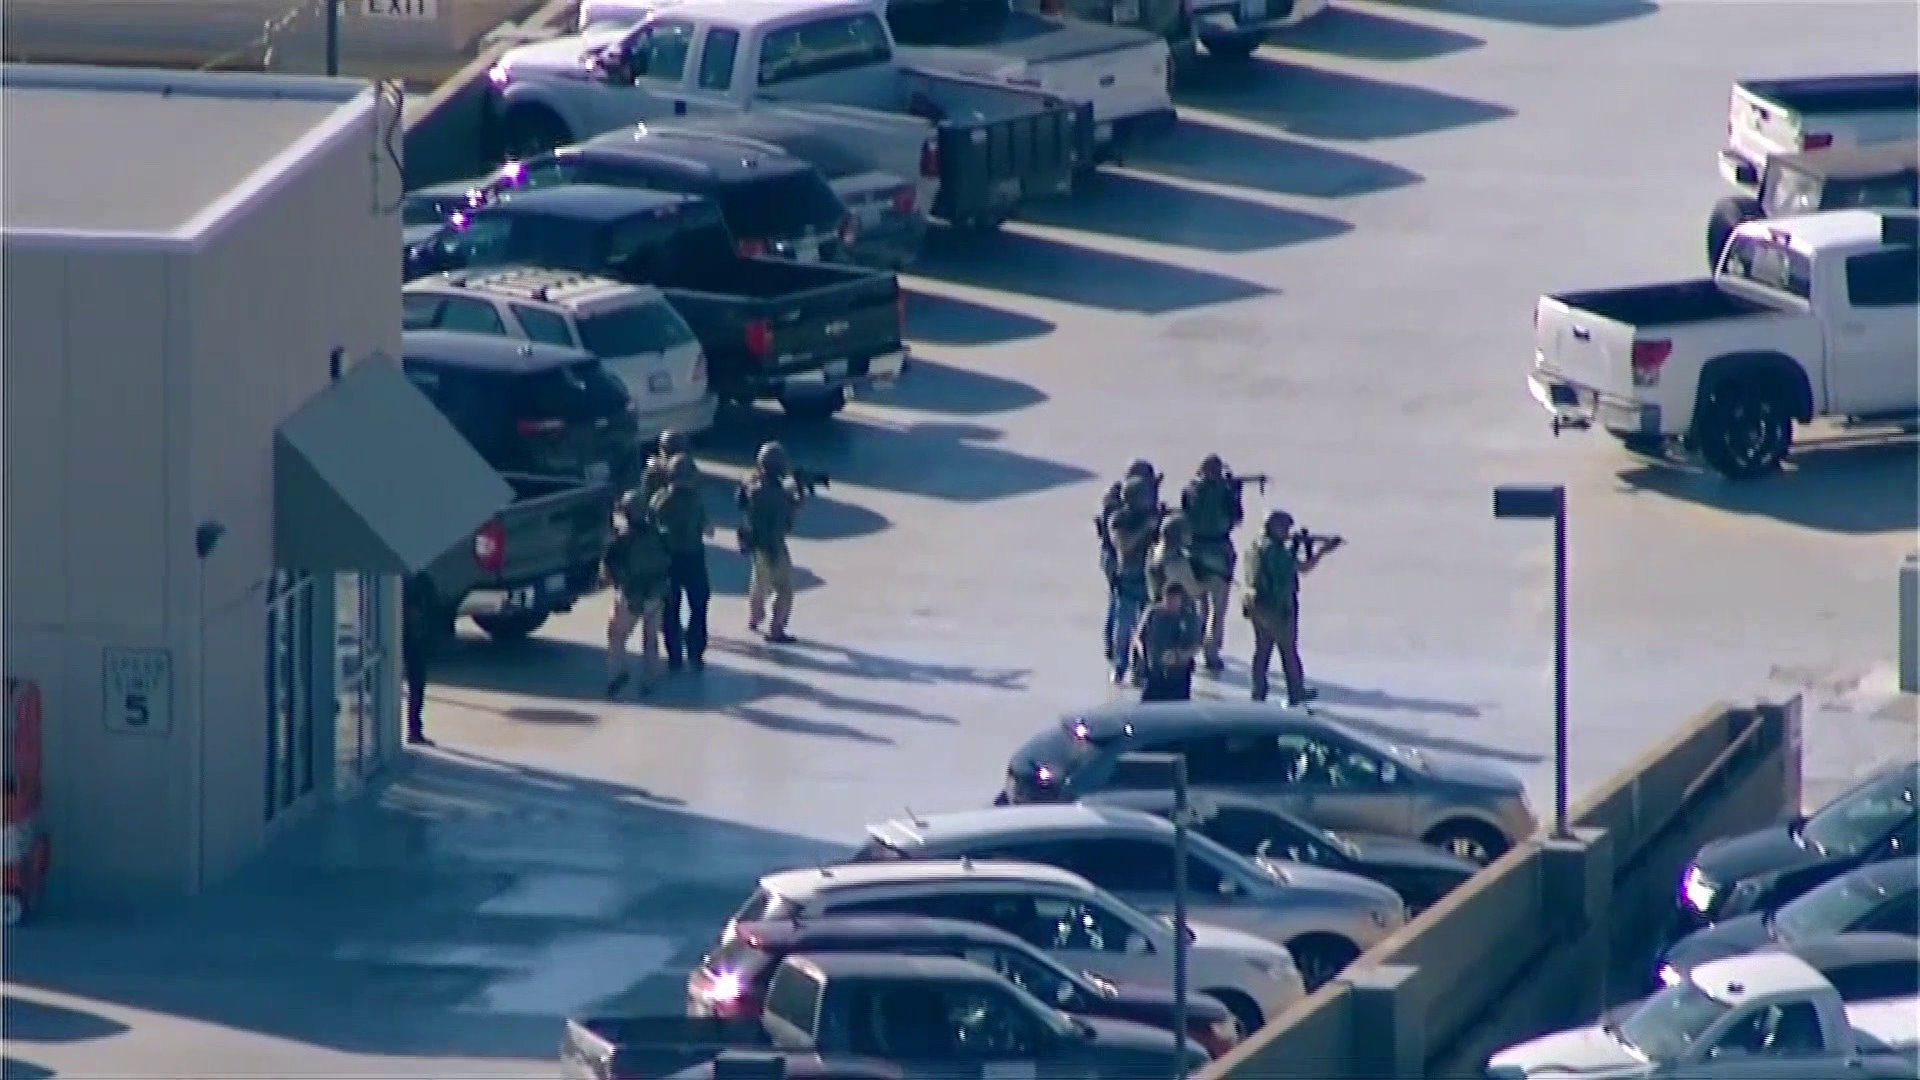 Officers searching parking garage for airport shooter